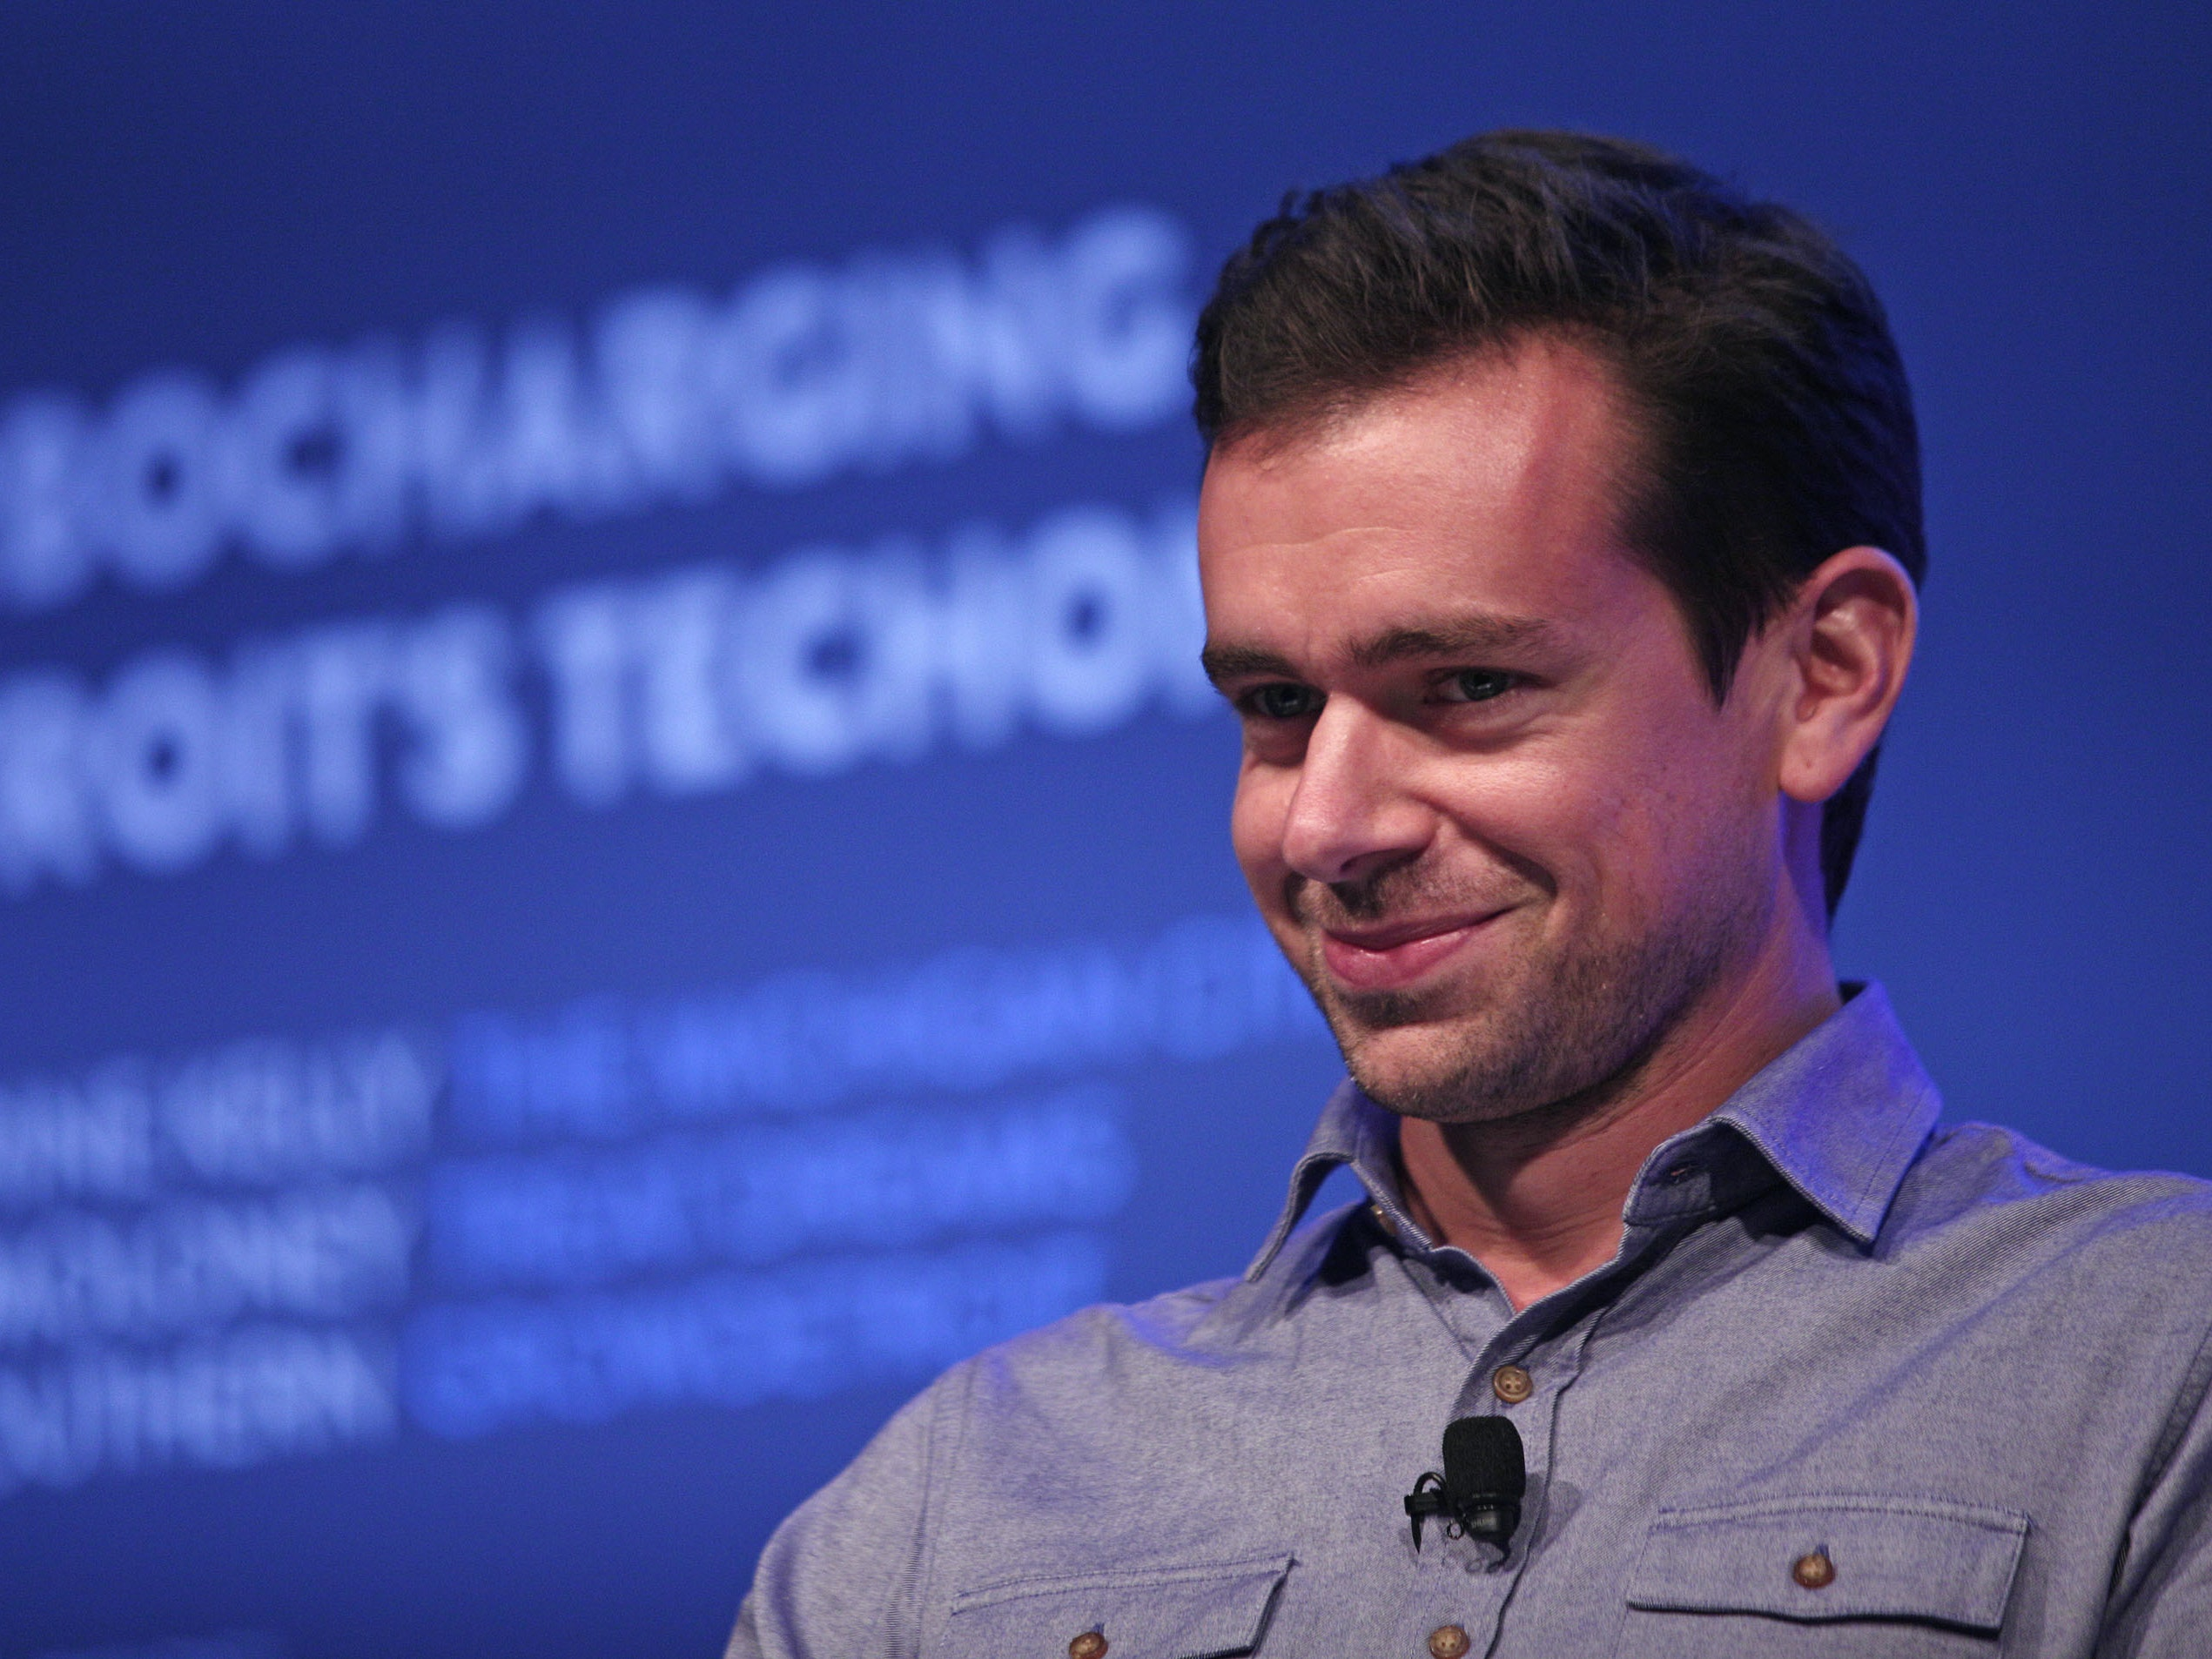 ISIS Declares War on Twitter and Facebook's Jack Dorsey and Mark Zuckerberg